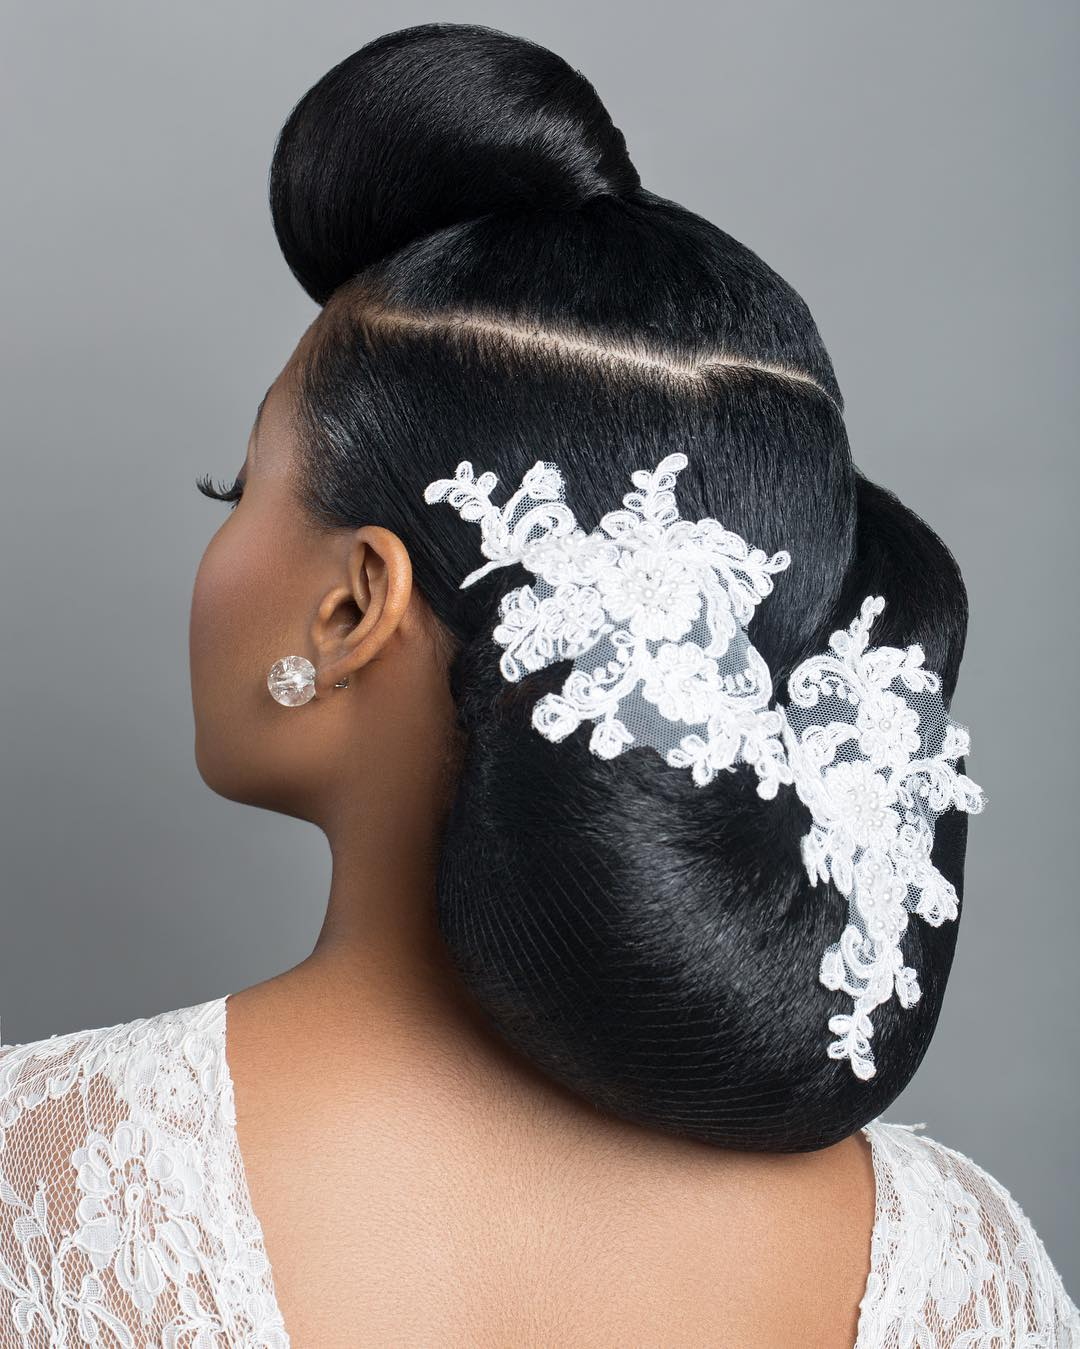 Wedding Hair Style Video: These Are Not Your Average Bridal Updos